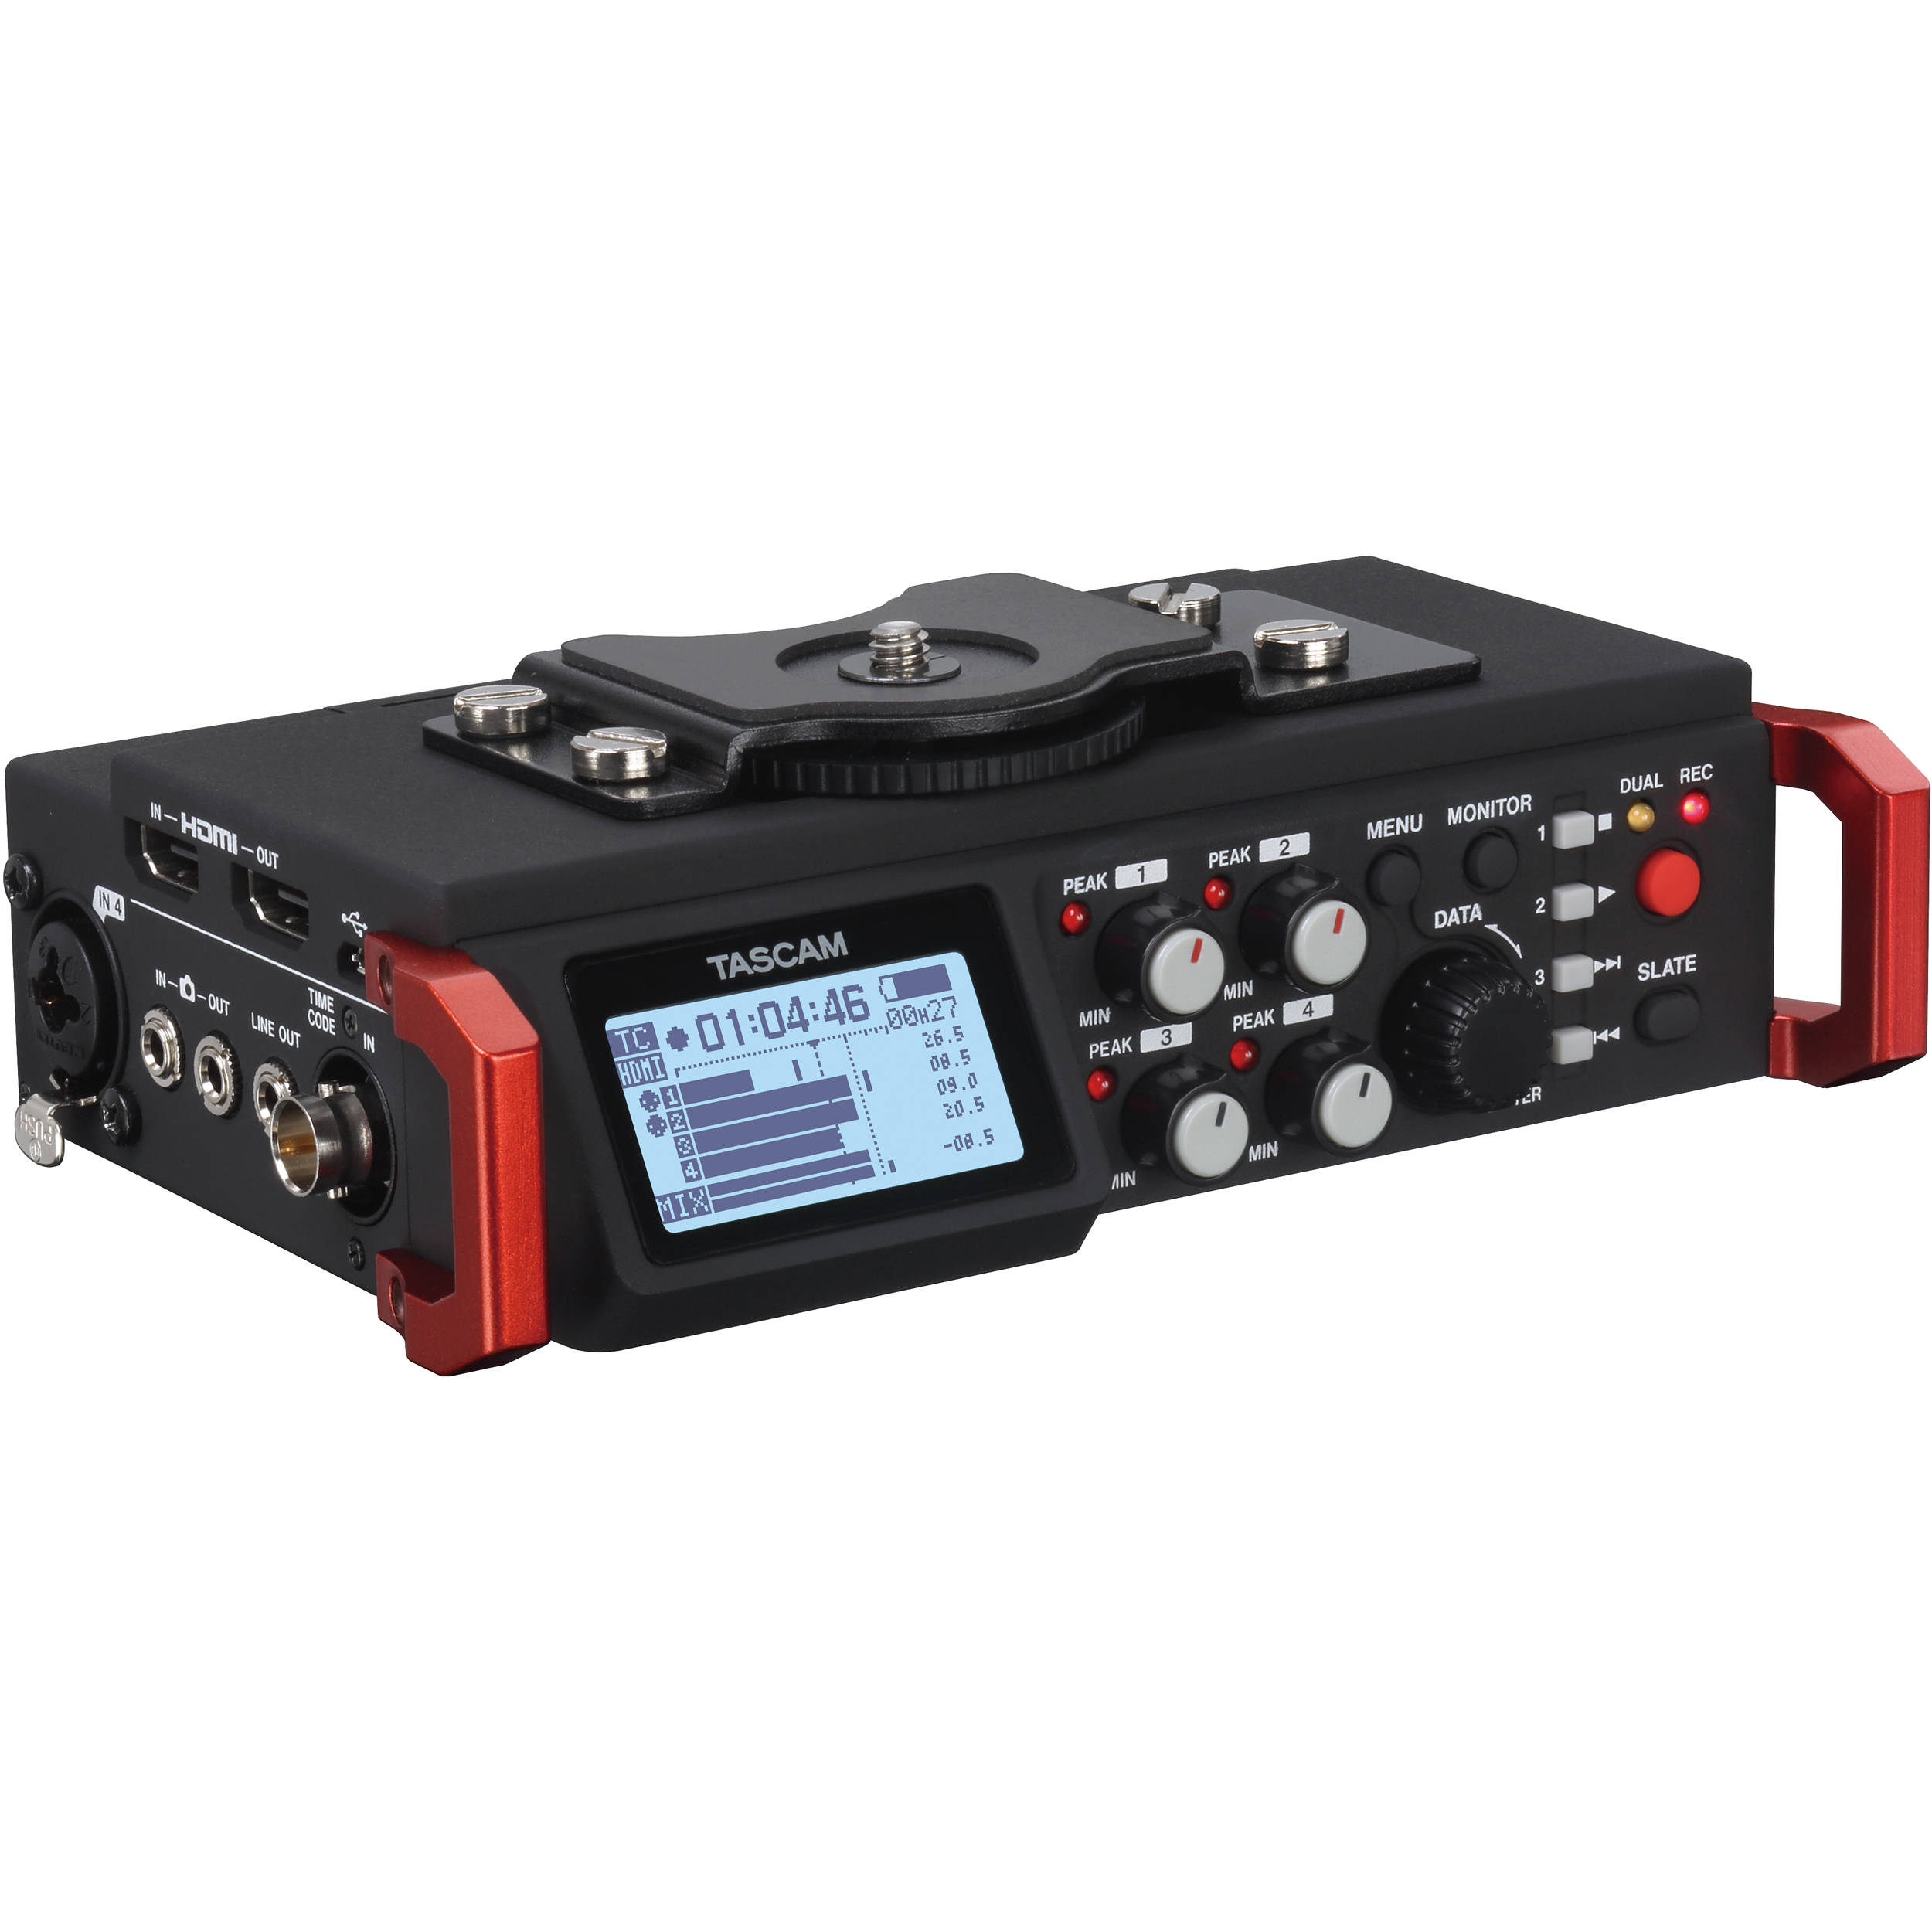 Tascam Dr 701d 6 Track Field Recorder For Dslr Bh Photo Car Alarm Wiring Diagram Pro With Smpte Timecode